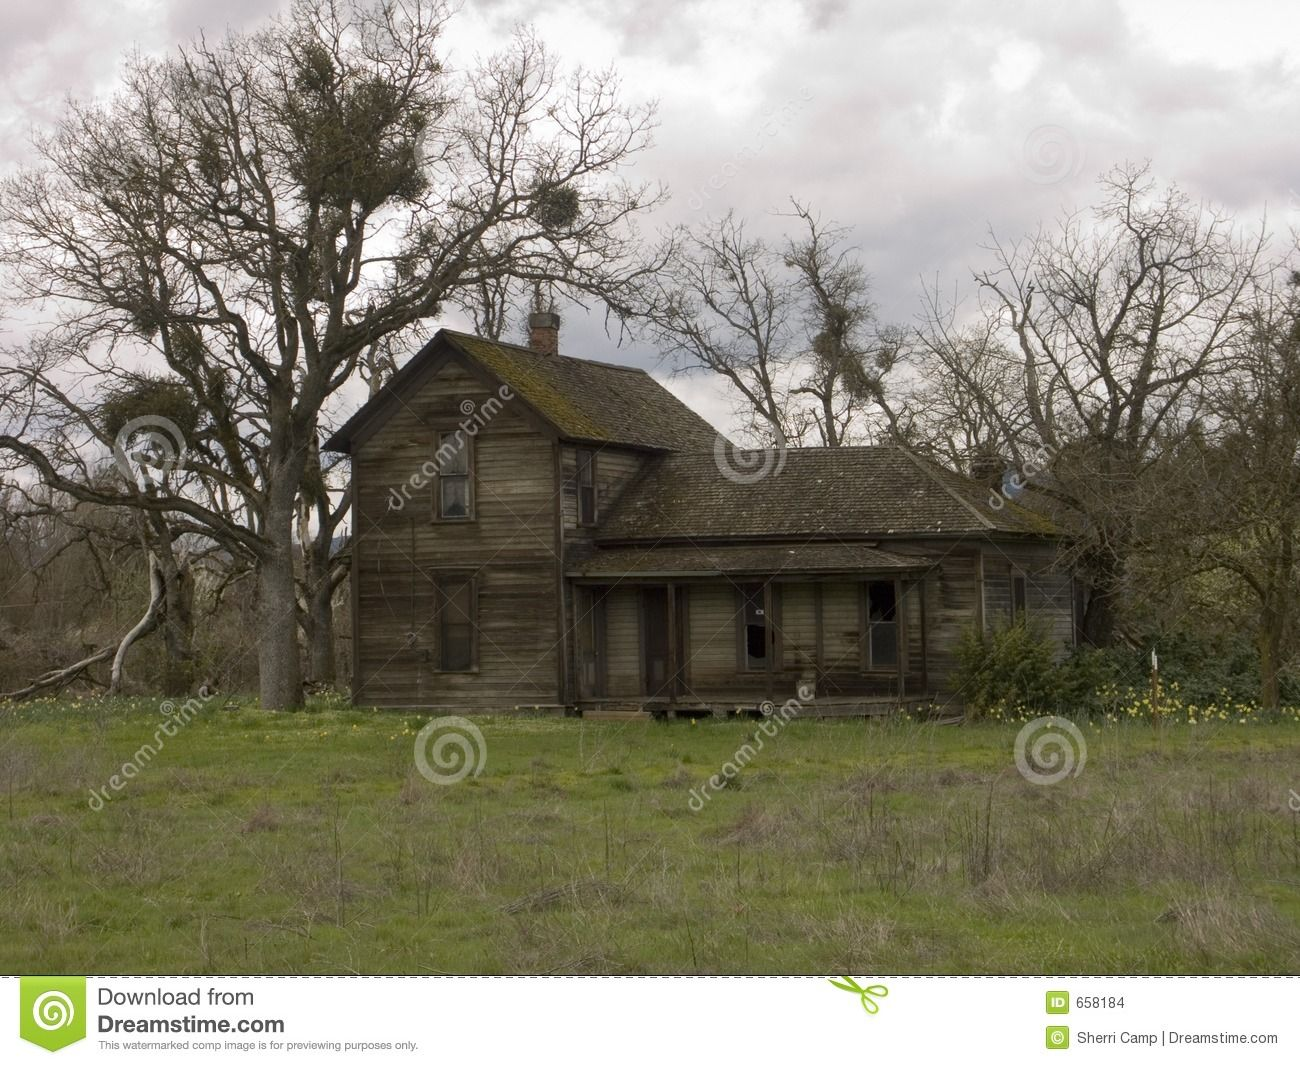 Images Of Rundown Neglected Homes Old Run Down Abandoned Farm House Vintage Abandoned Farm Houses Old Farm Houses Abandoned Houses